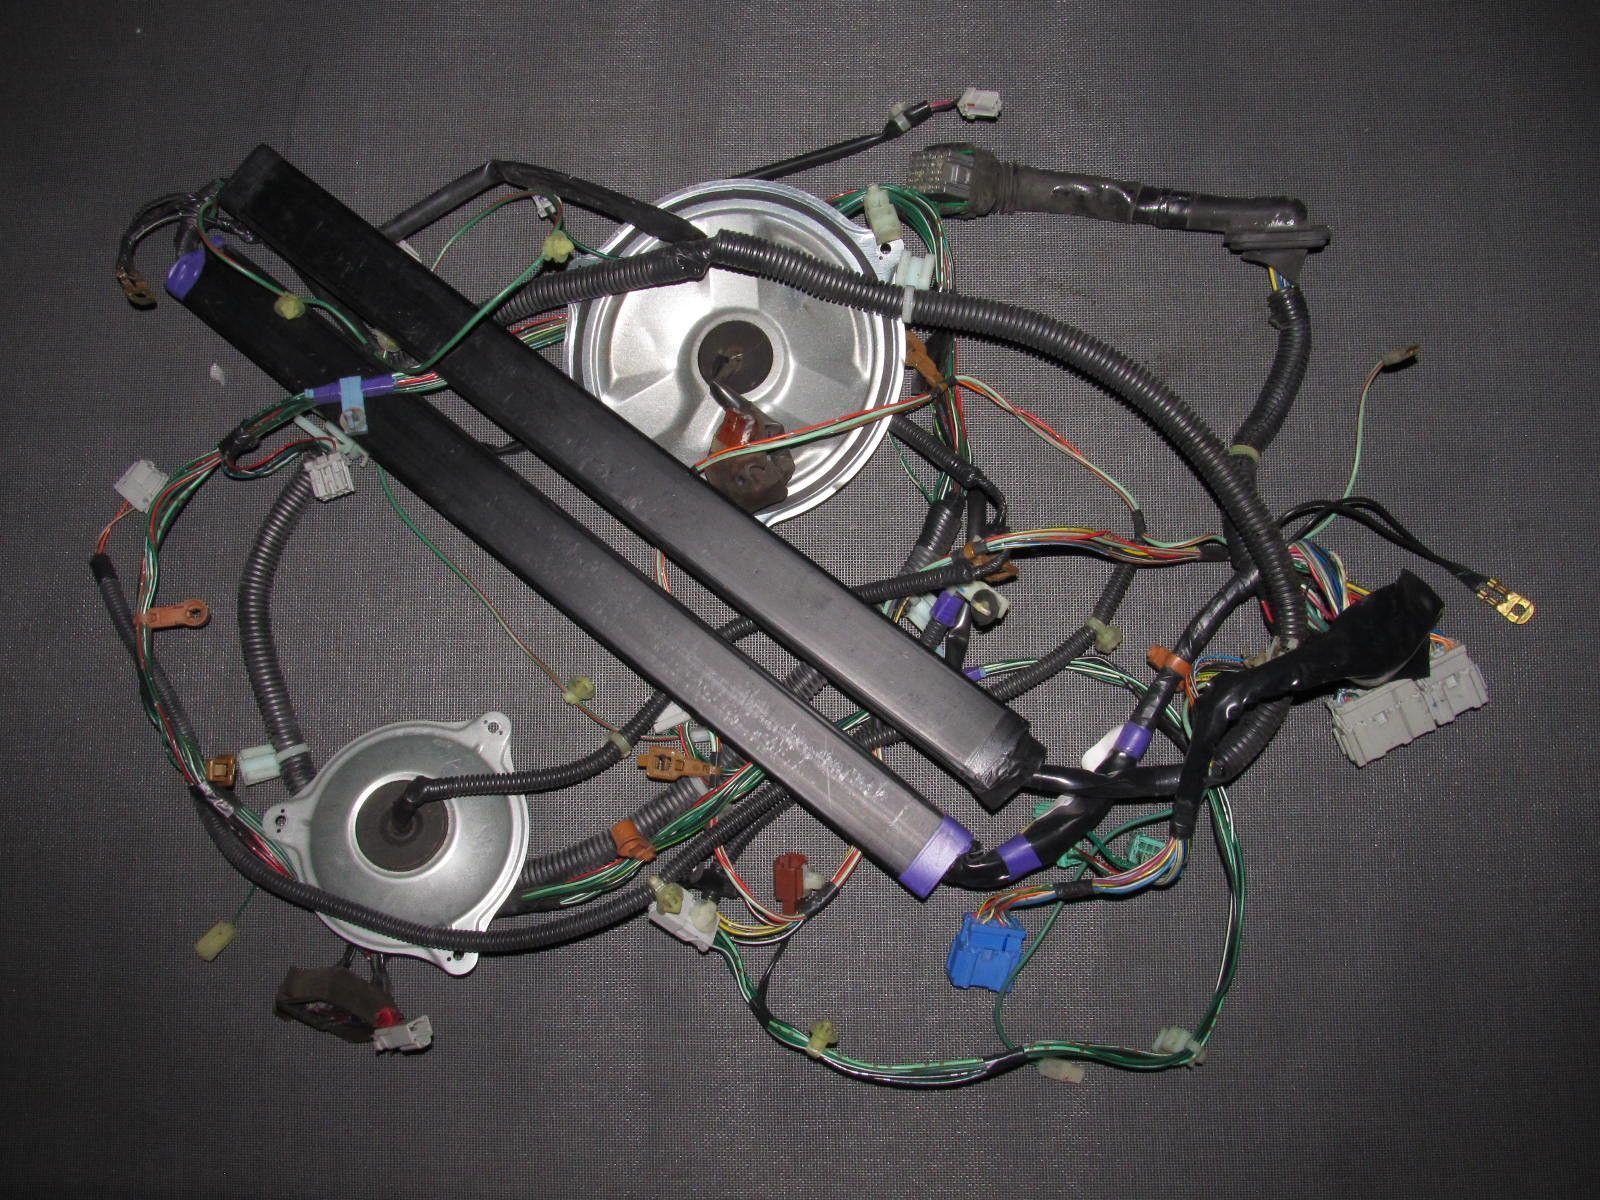 94 01 acura integra oem coupe tail light fuel pump antenna wiring harness driver side left [ 1600 x 1200 Pixel ]